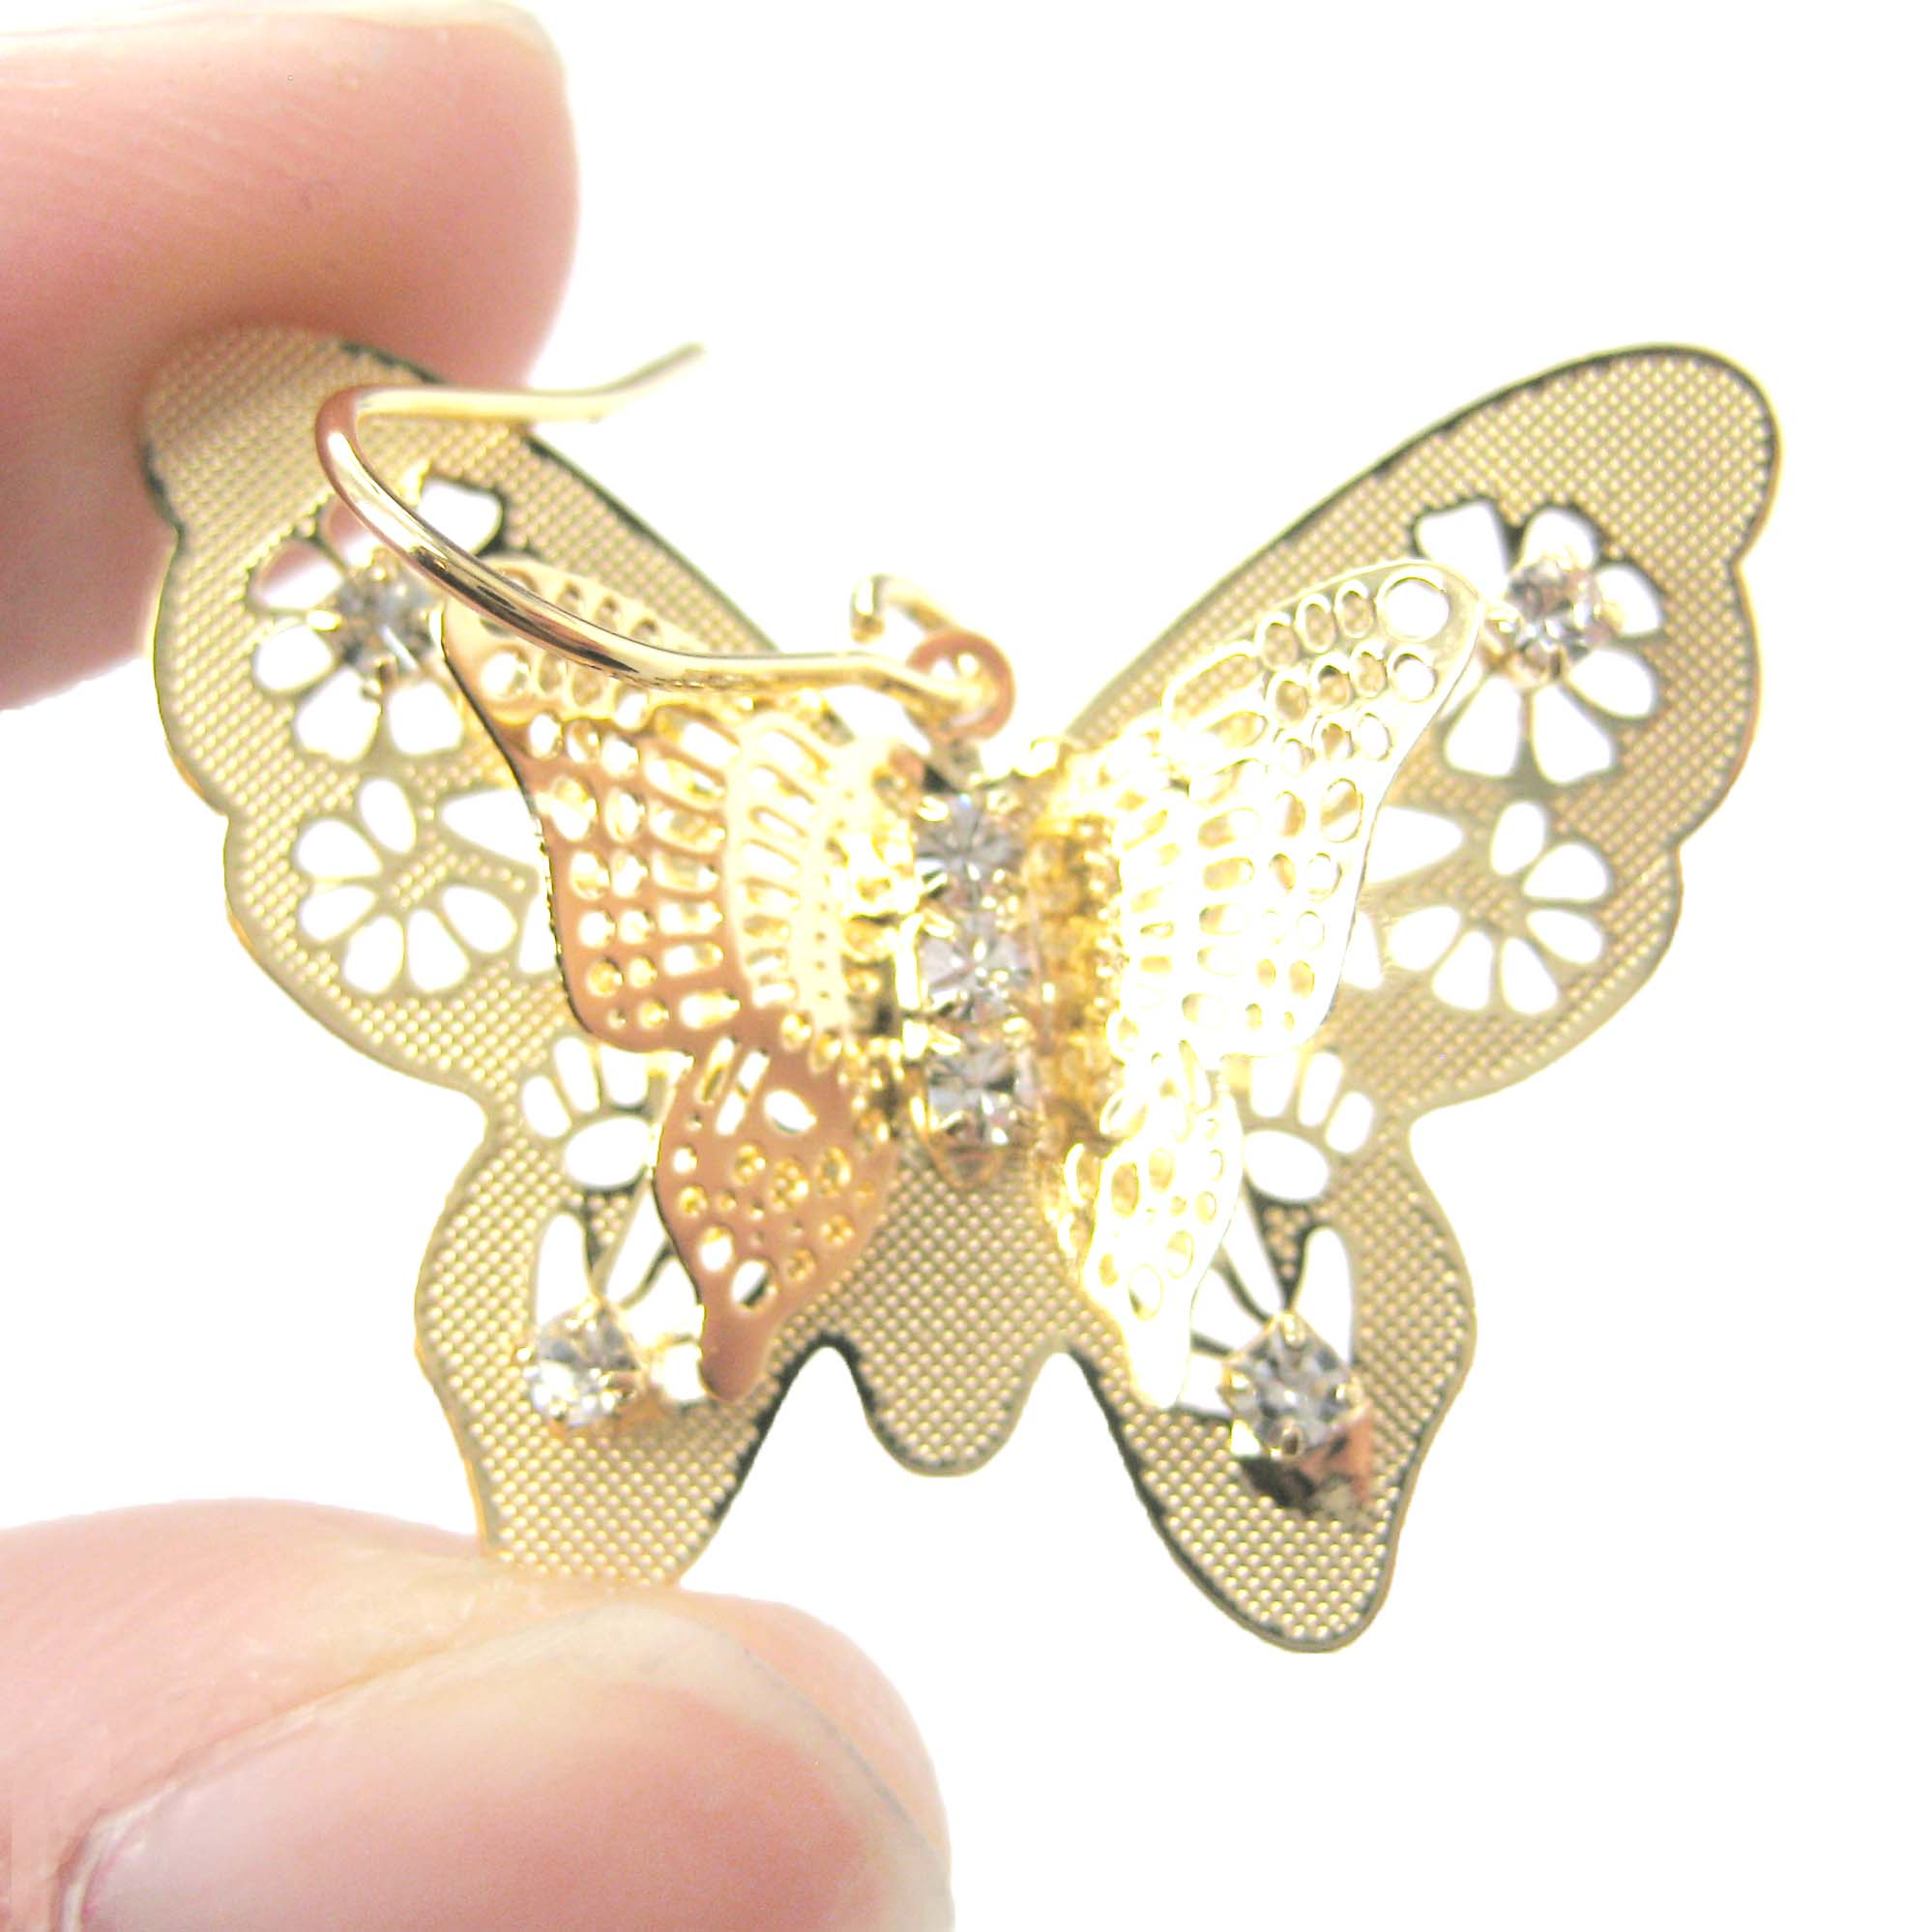 Detailed Butterfly Shaped Cut Out Dangle Earrings In Gold